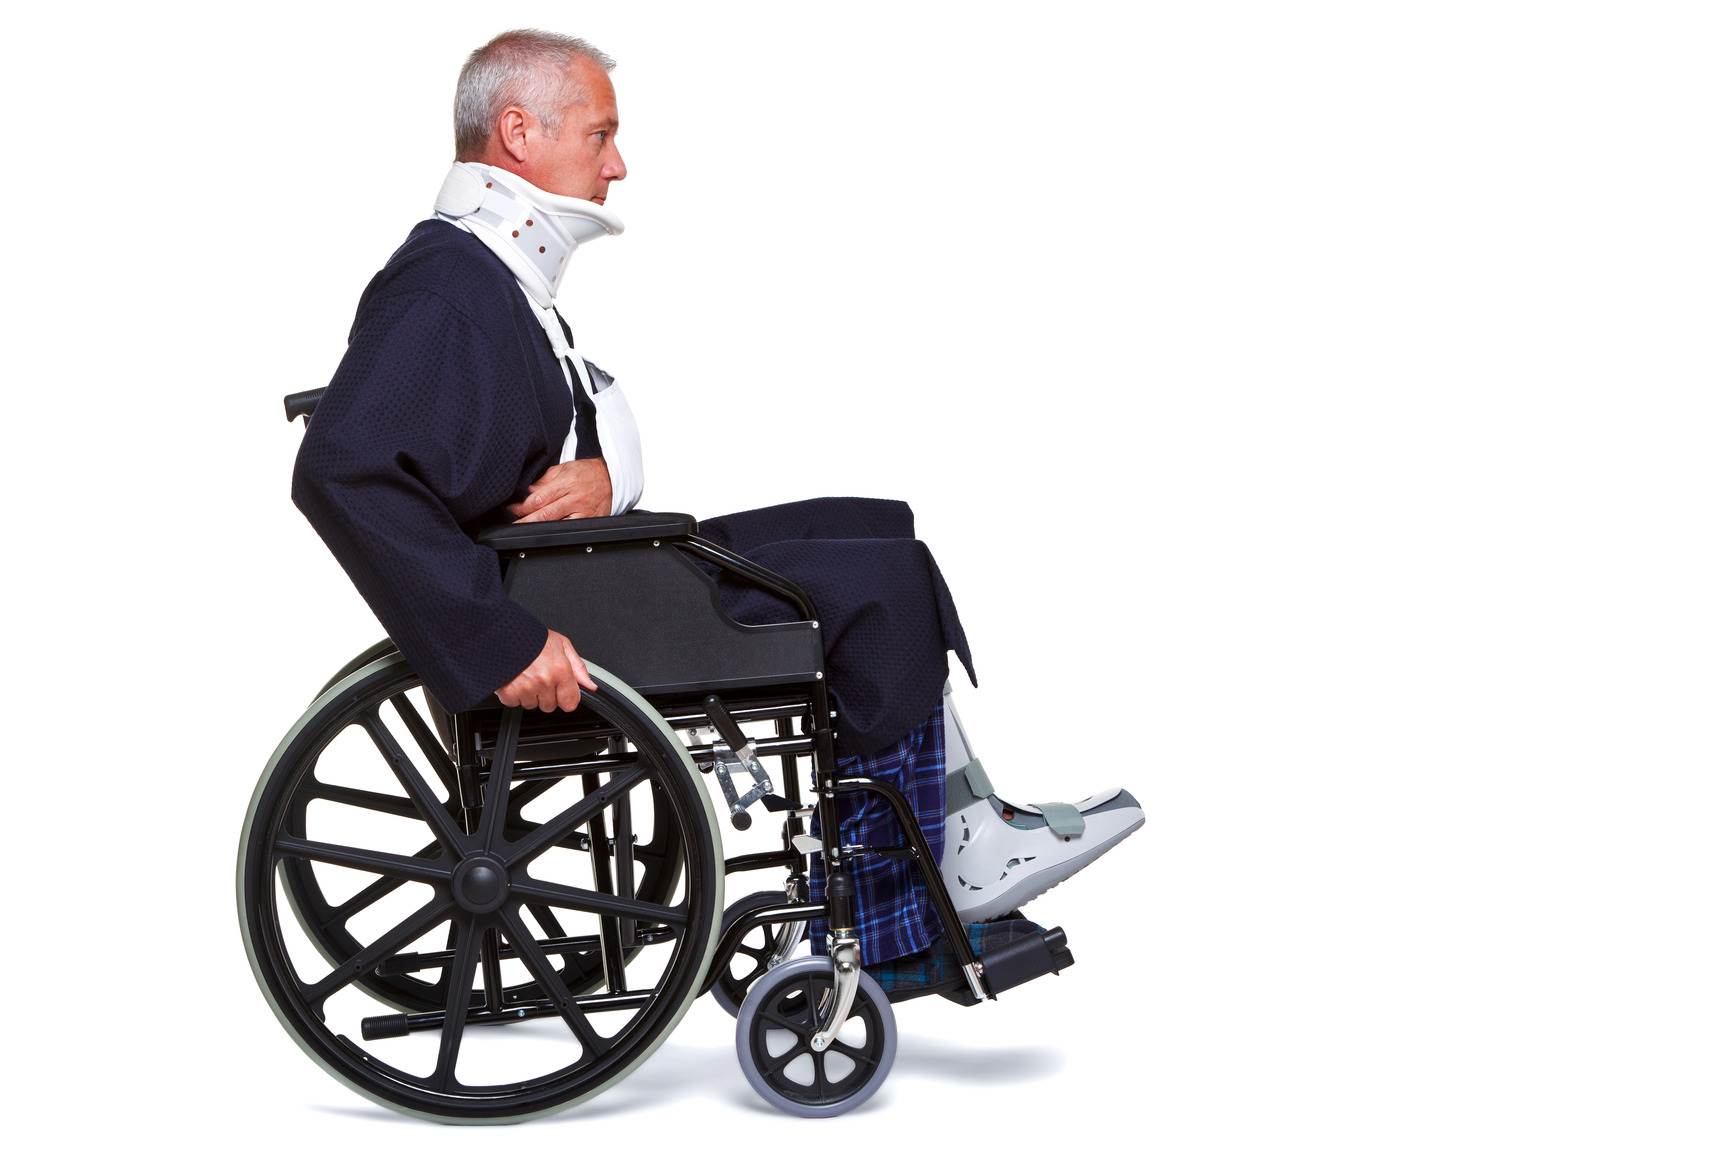 Disabled Person In Wheelchair Images